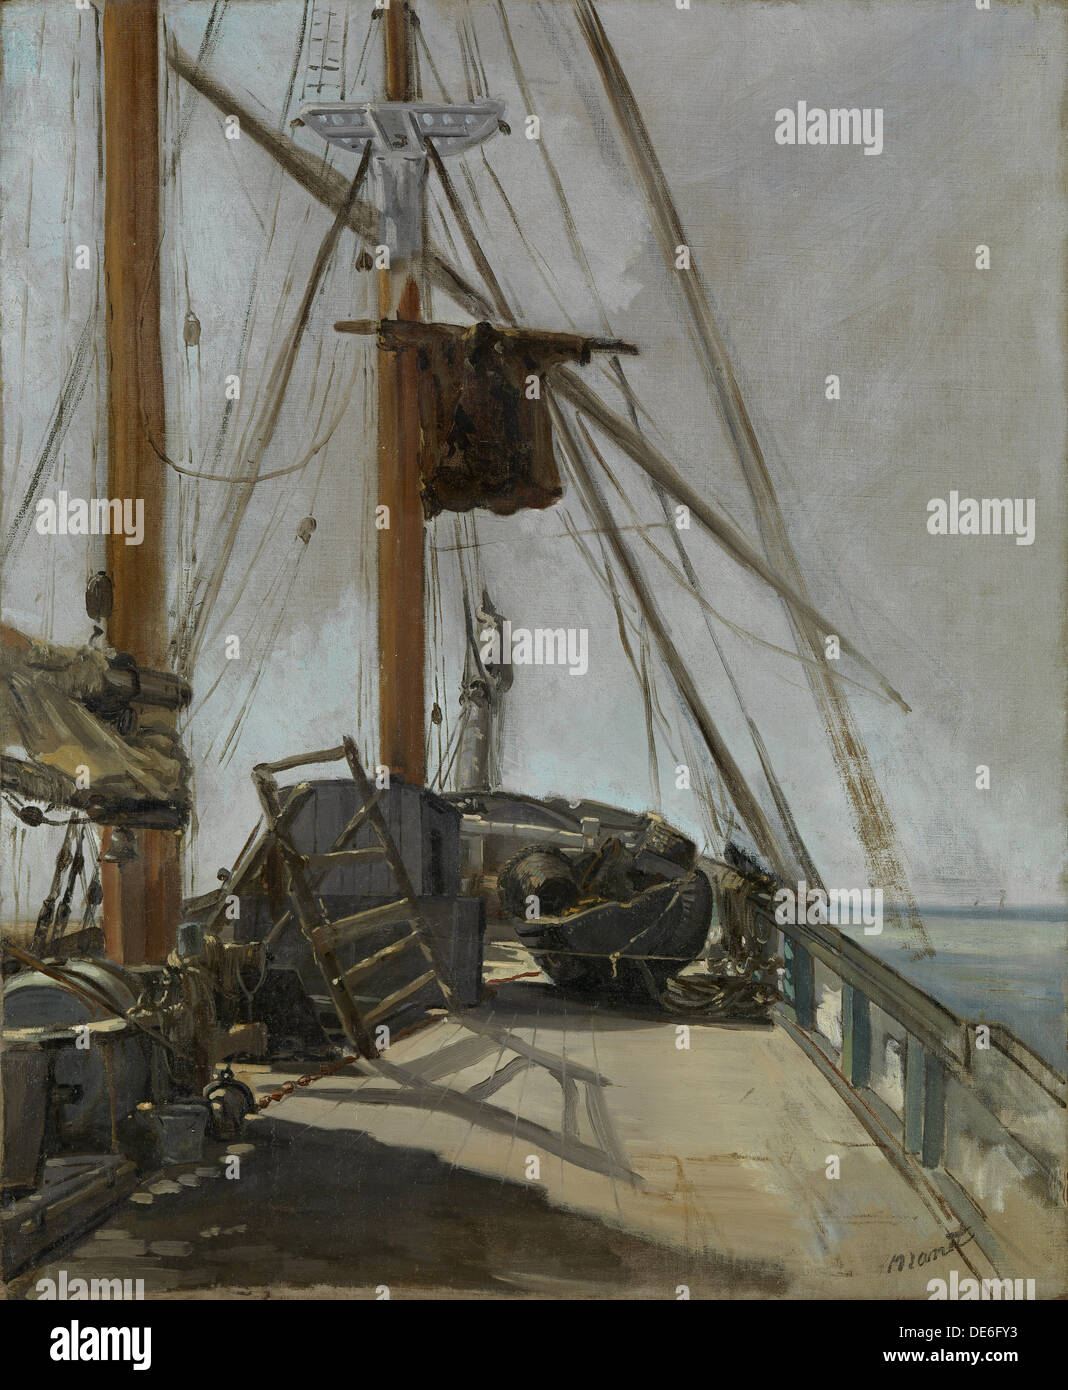 The ship's deck, ca 1860. Artist: Manet, Édouard (1832-1883) - Stock Image